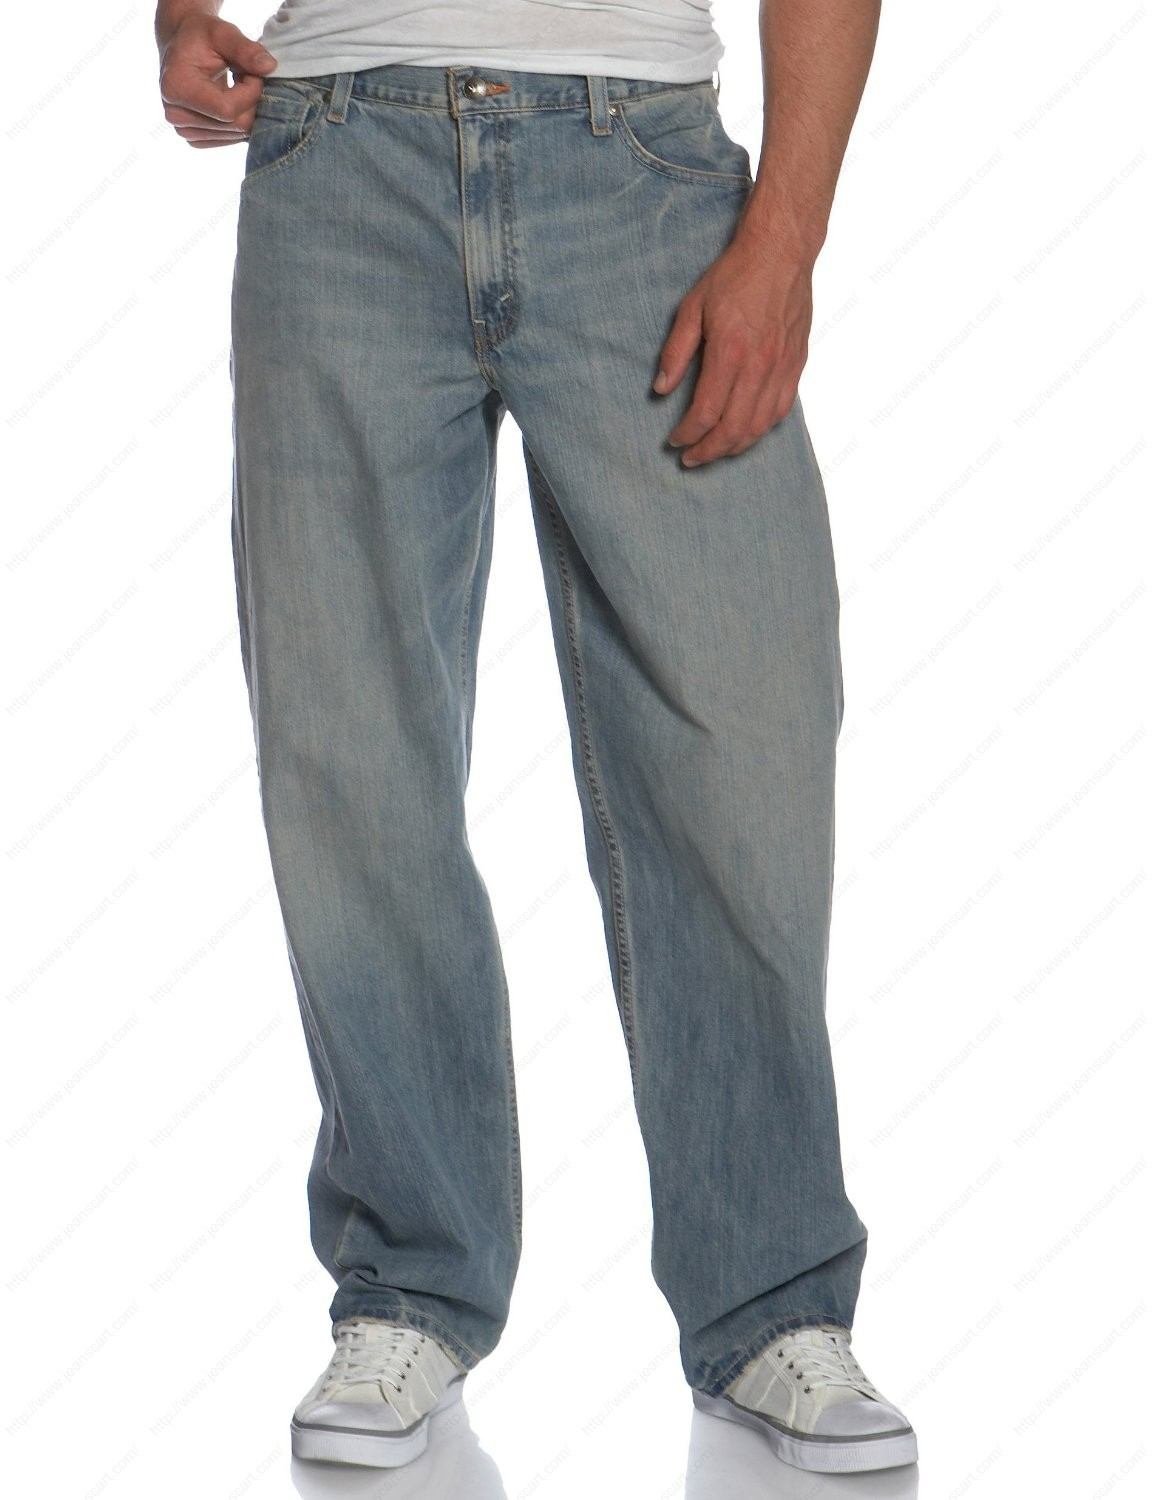 Mens Baggy Jeans wmzseQVG